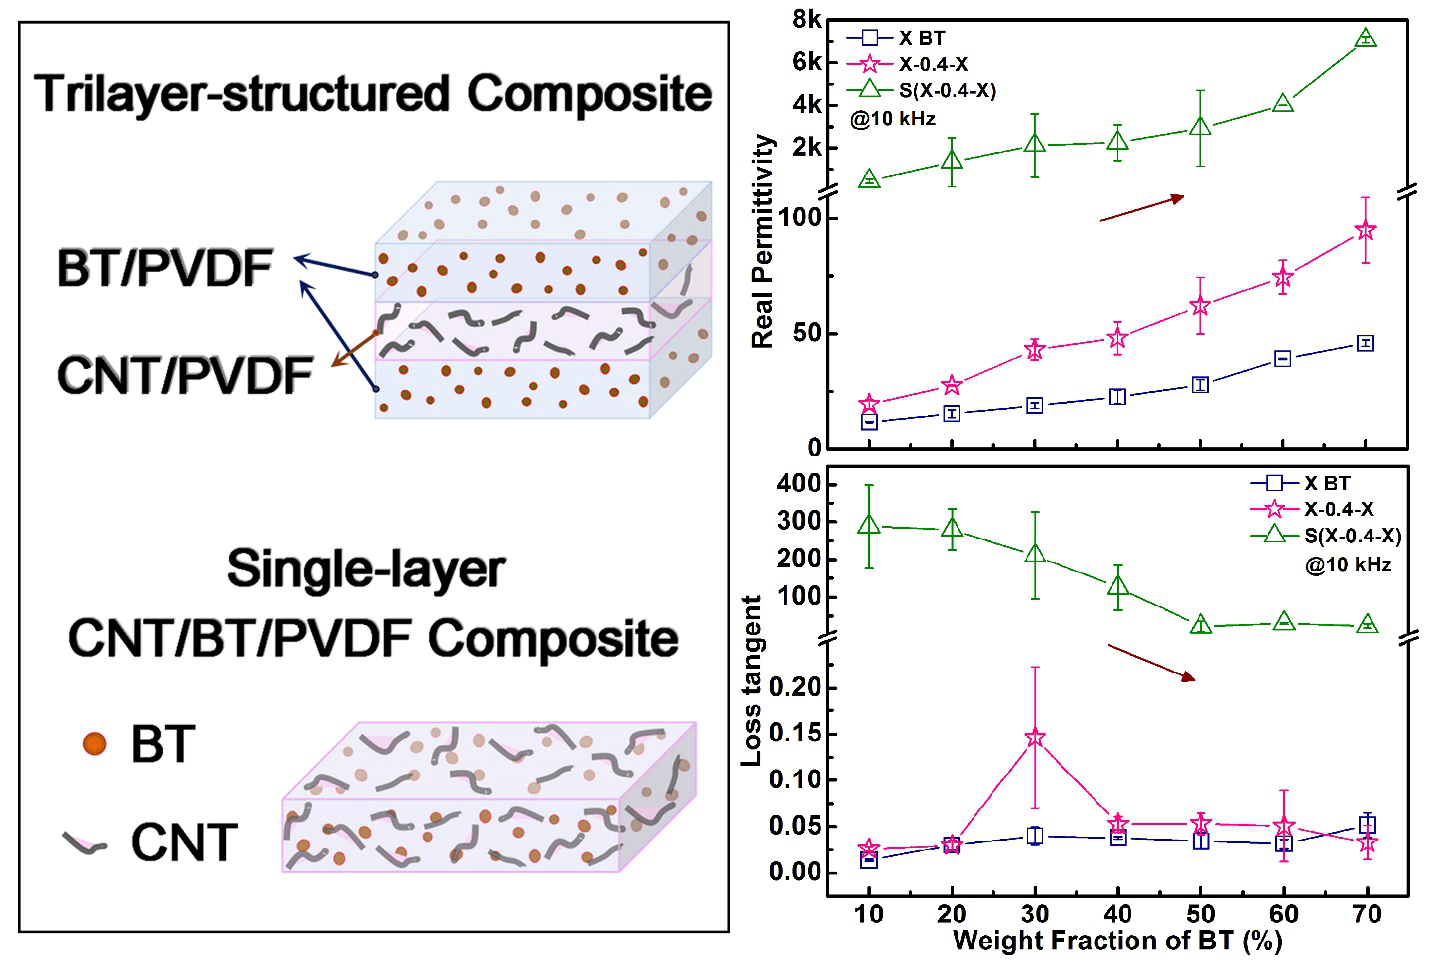 Enhancing Dielectric Performance of Poly(vinylidene fluoride) Nanocomposites via Controlled Distribution of Carbon Nanotubes and Barium Titanate Nanoparticle